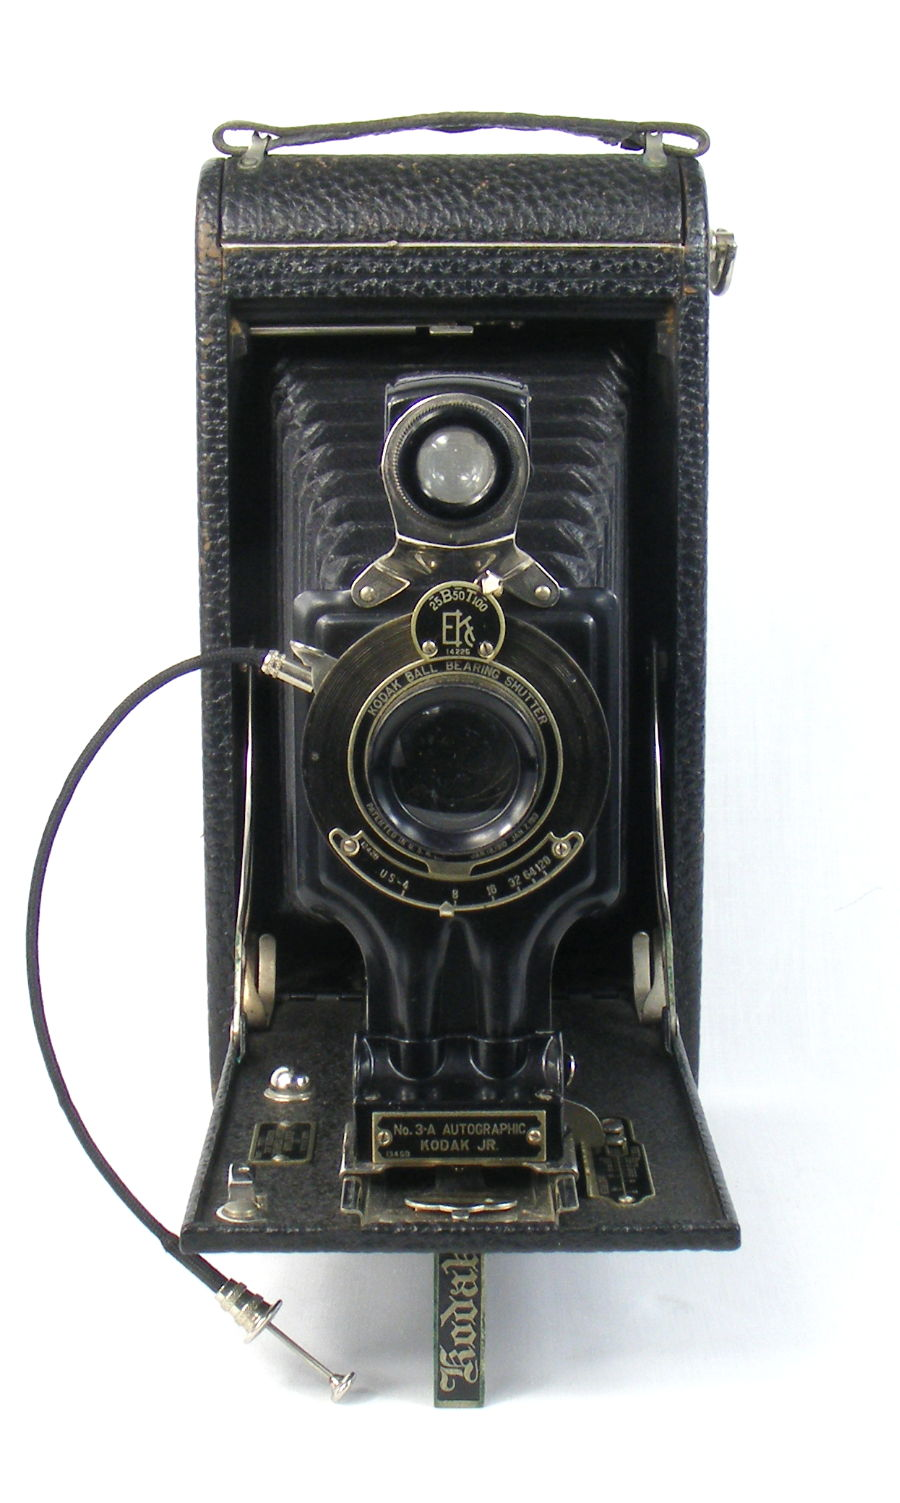 Image of No 3A Autographic Kodak Junior camera (front view)